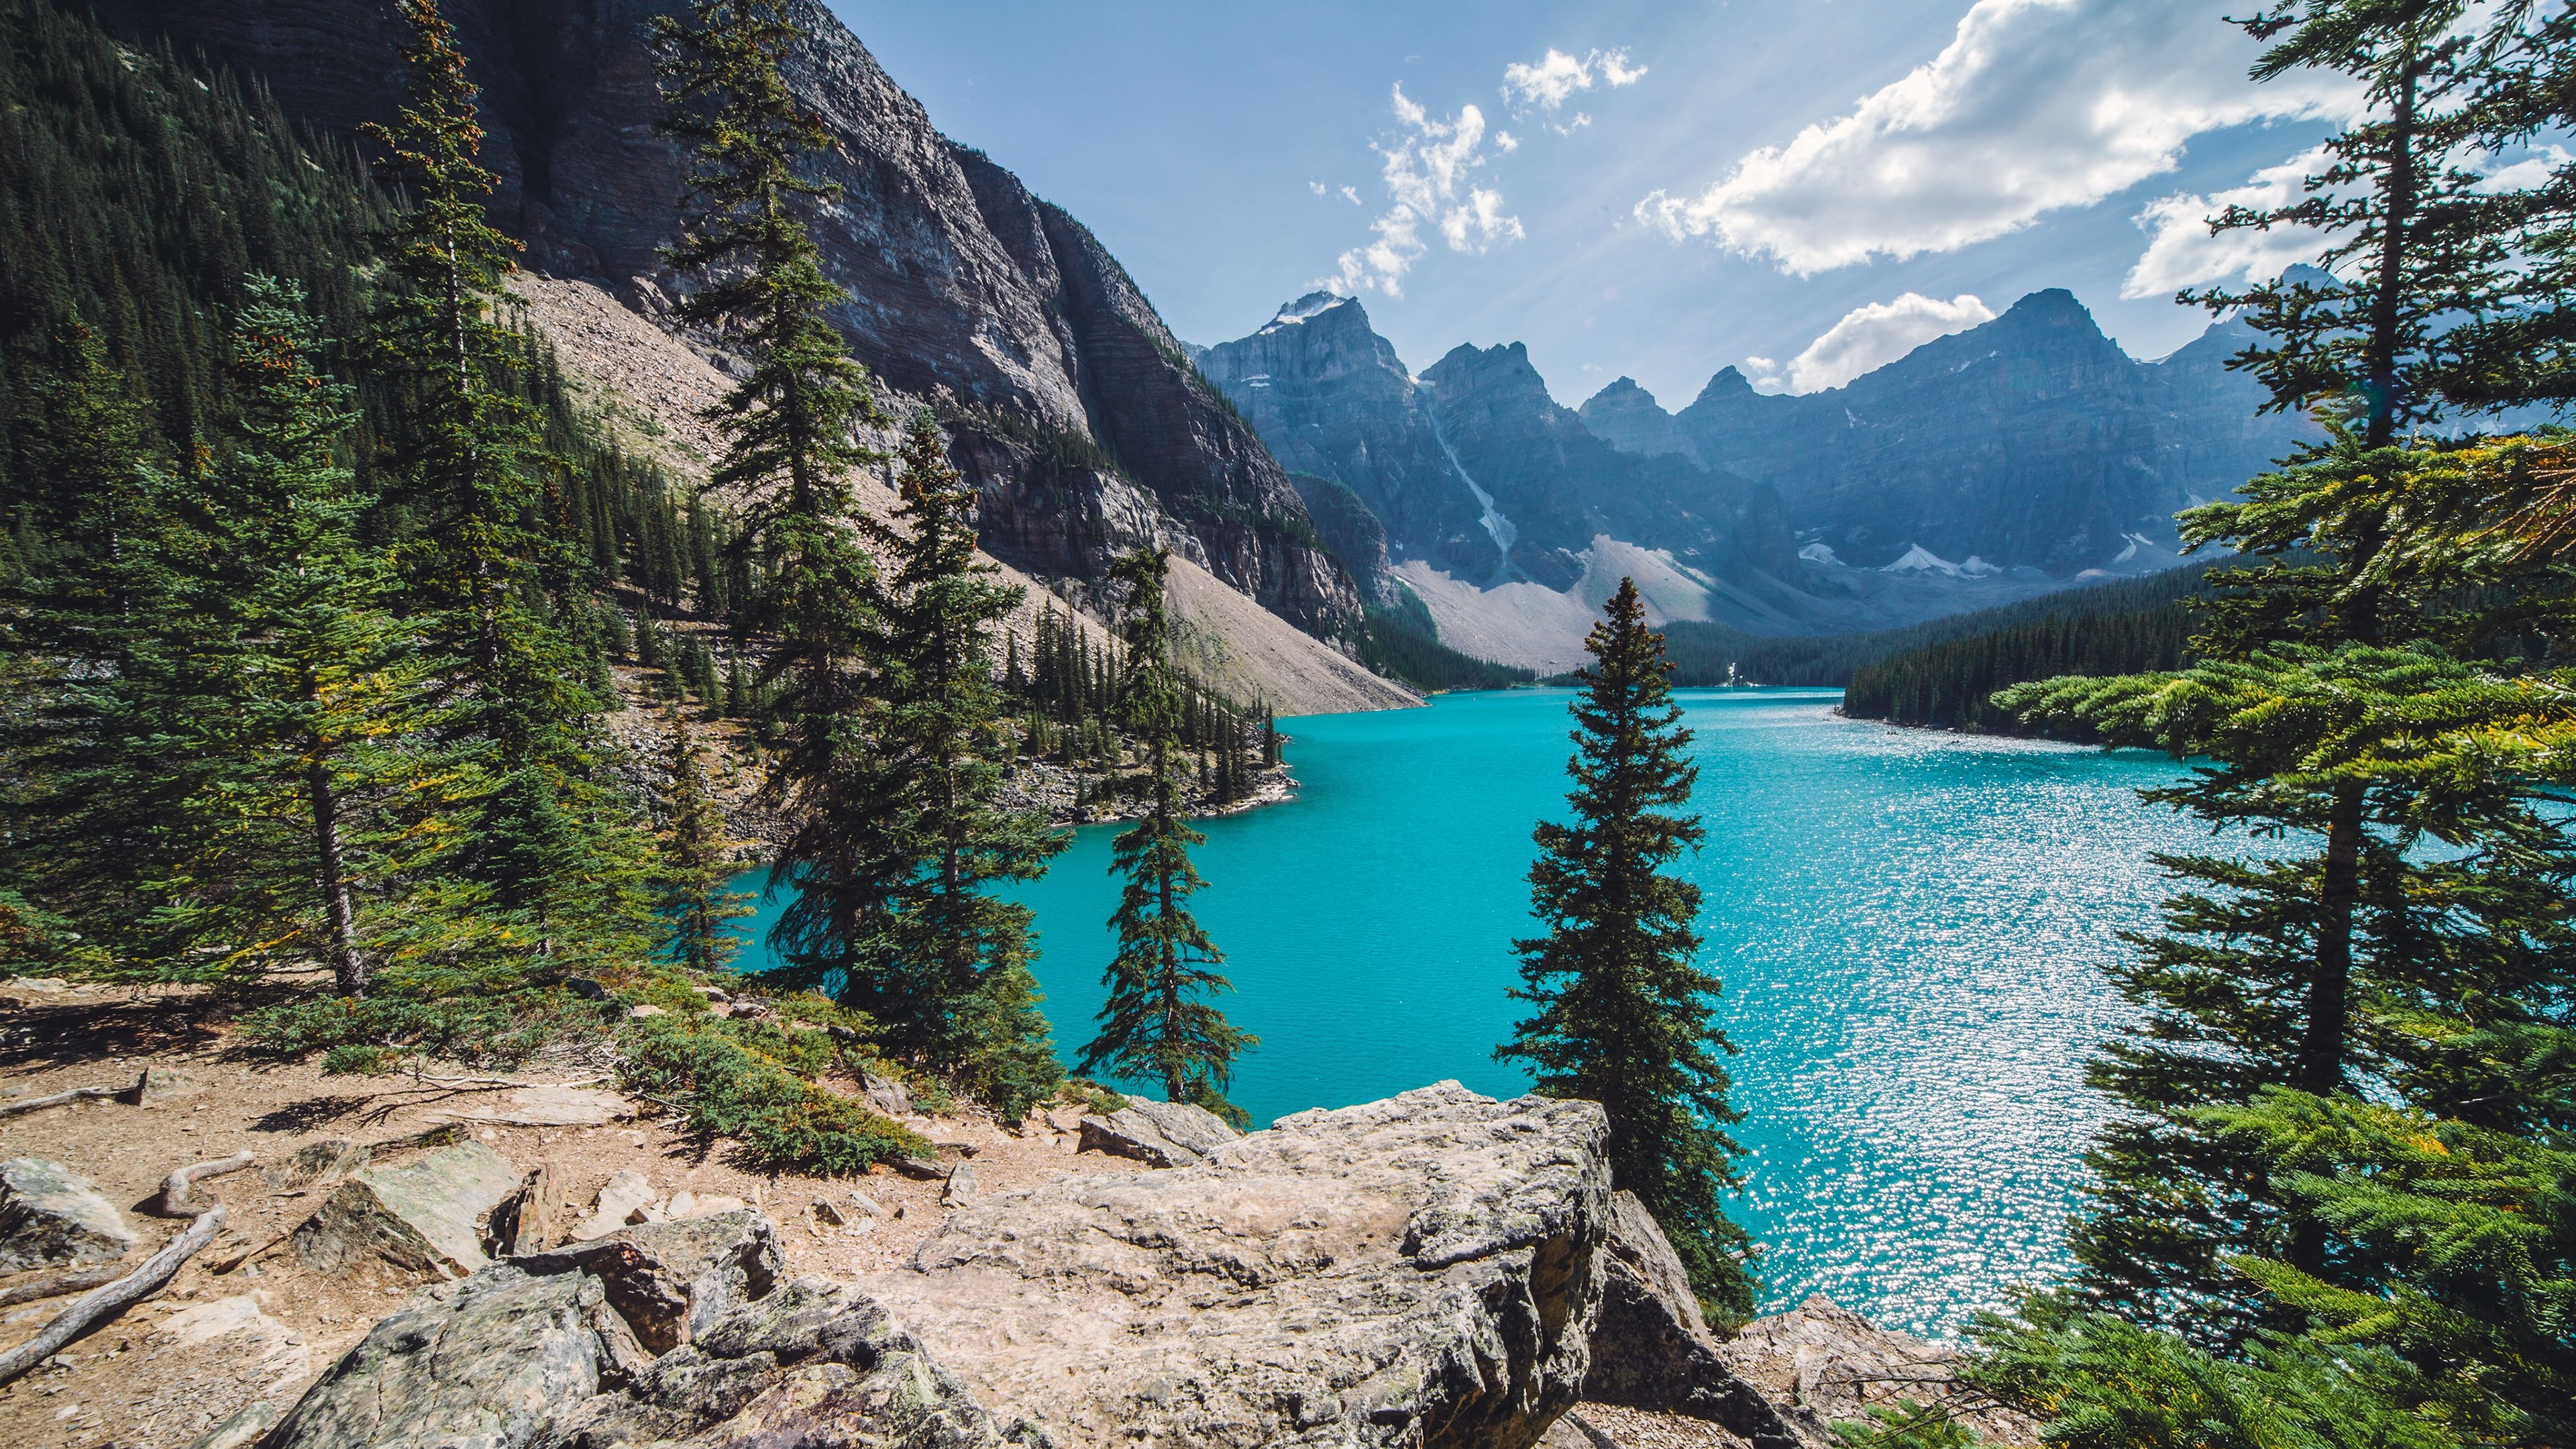 Sunny day over Moraine Lake Wallpaper for Desktop 4K 3840x2160